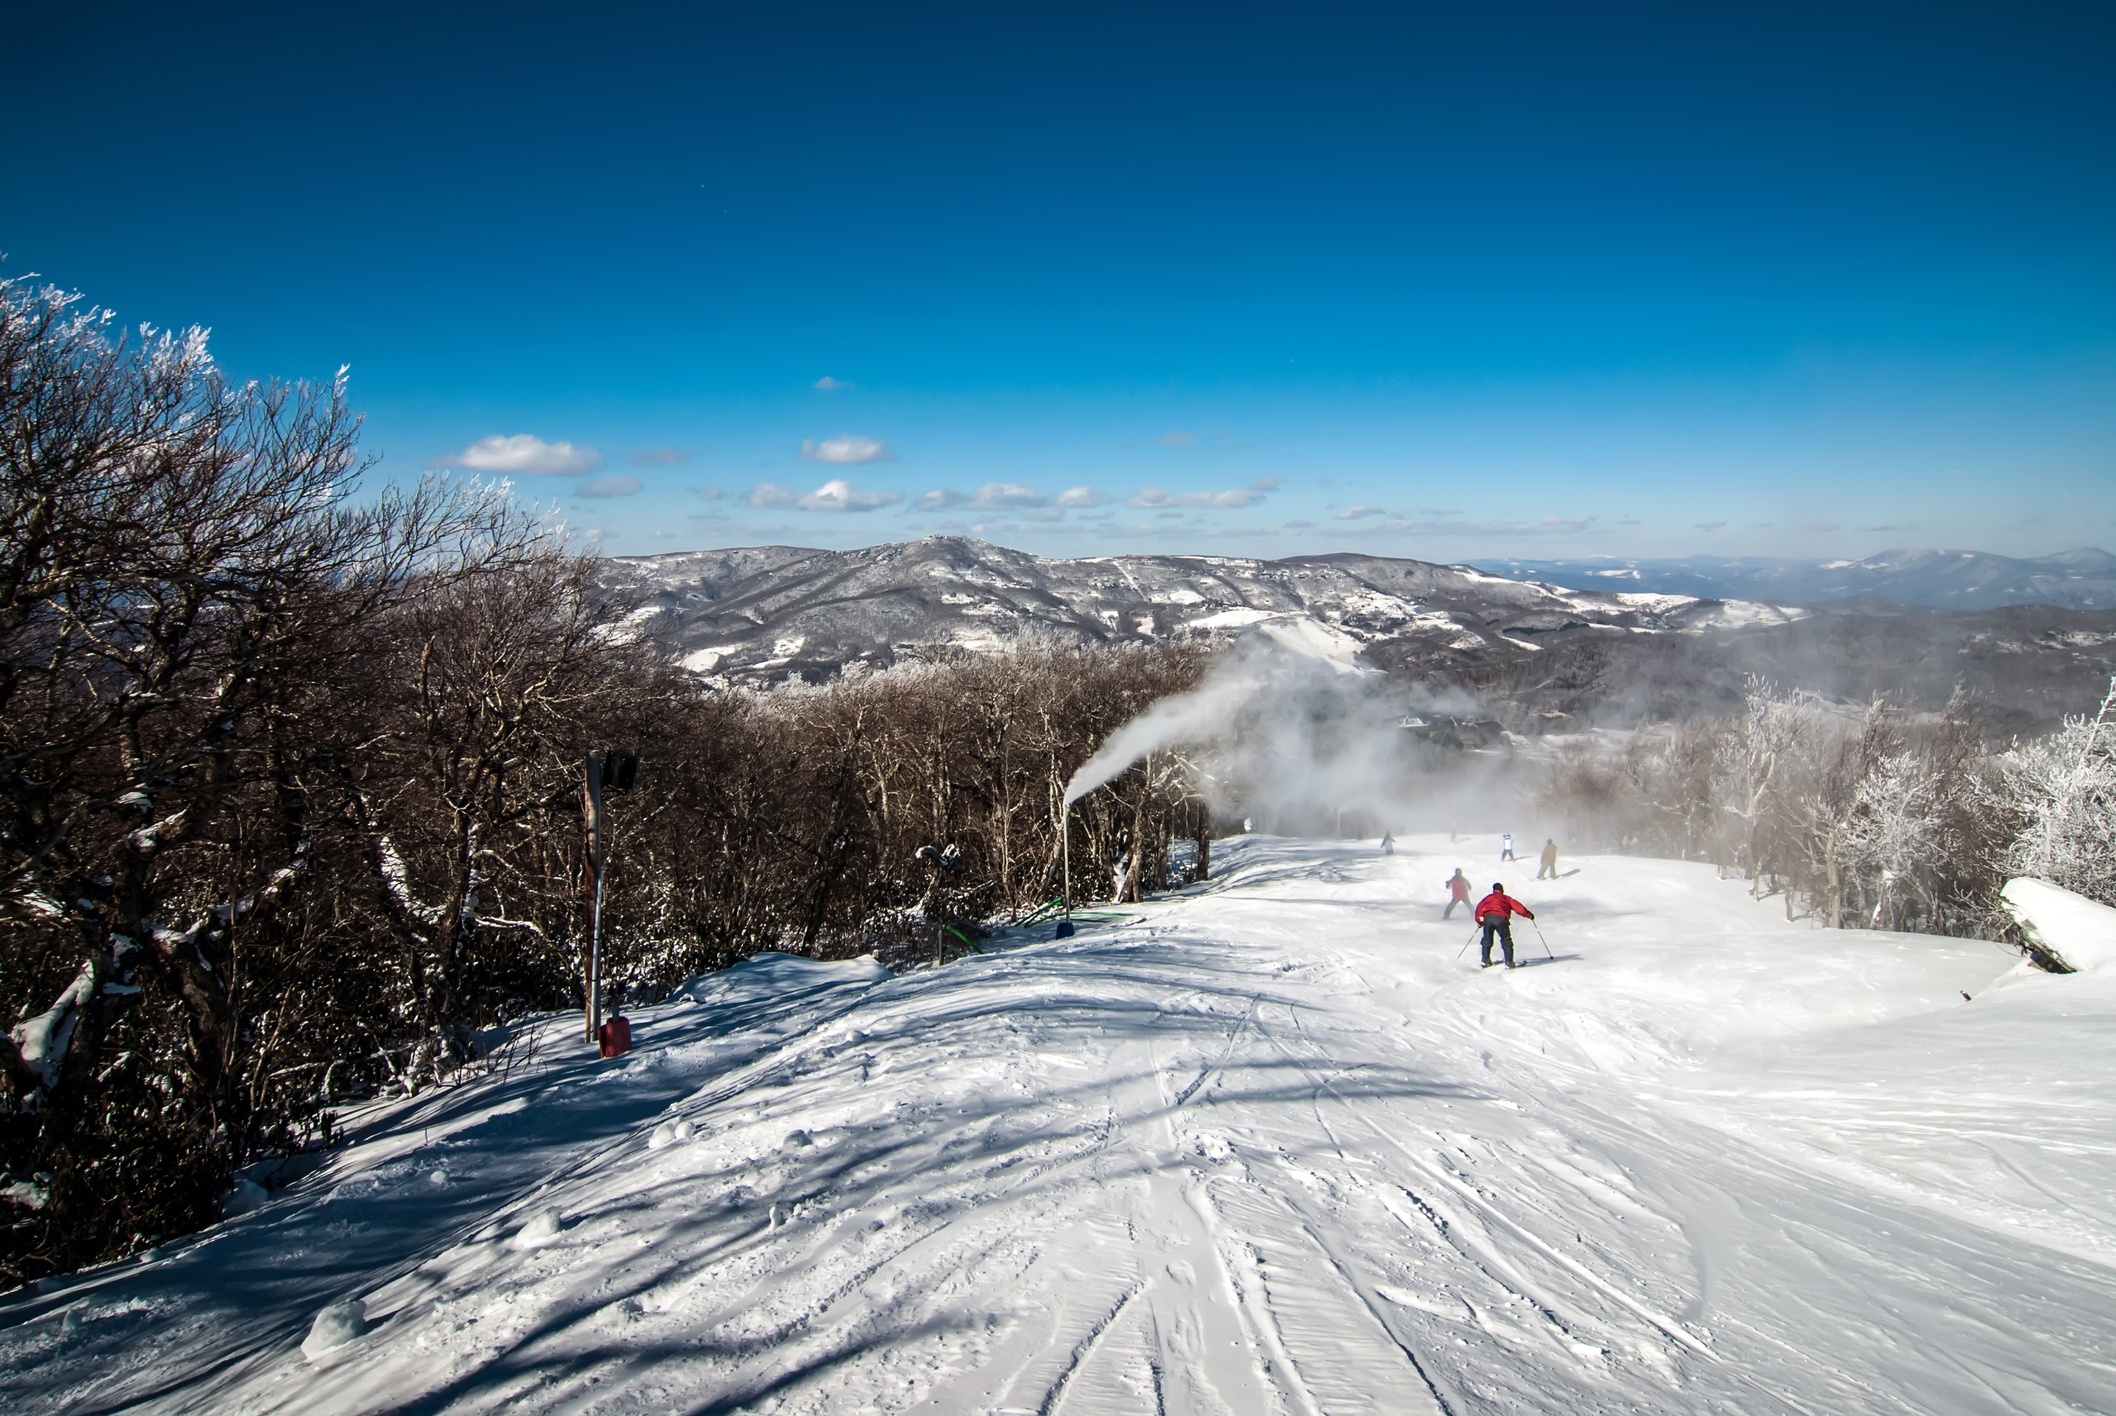 North Carolina skiing resort (Getty Images)